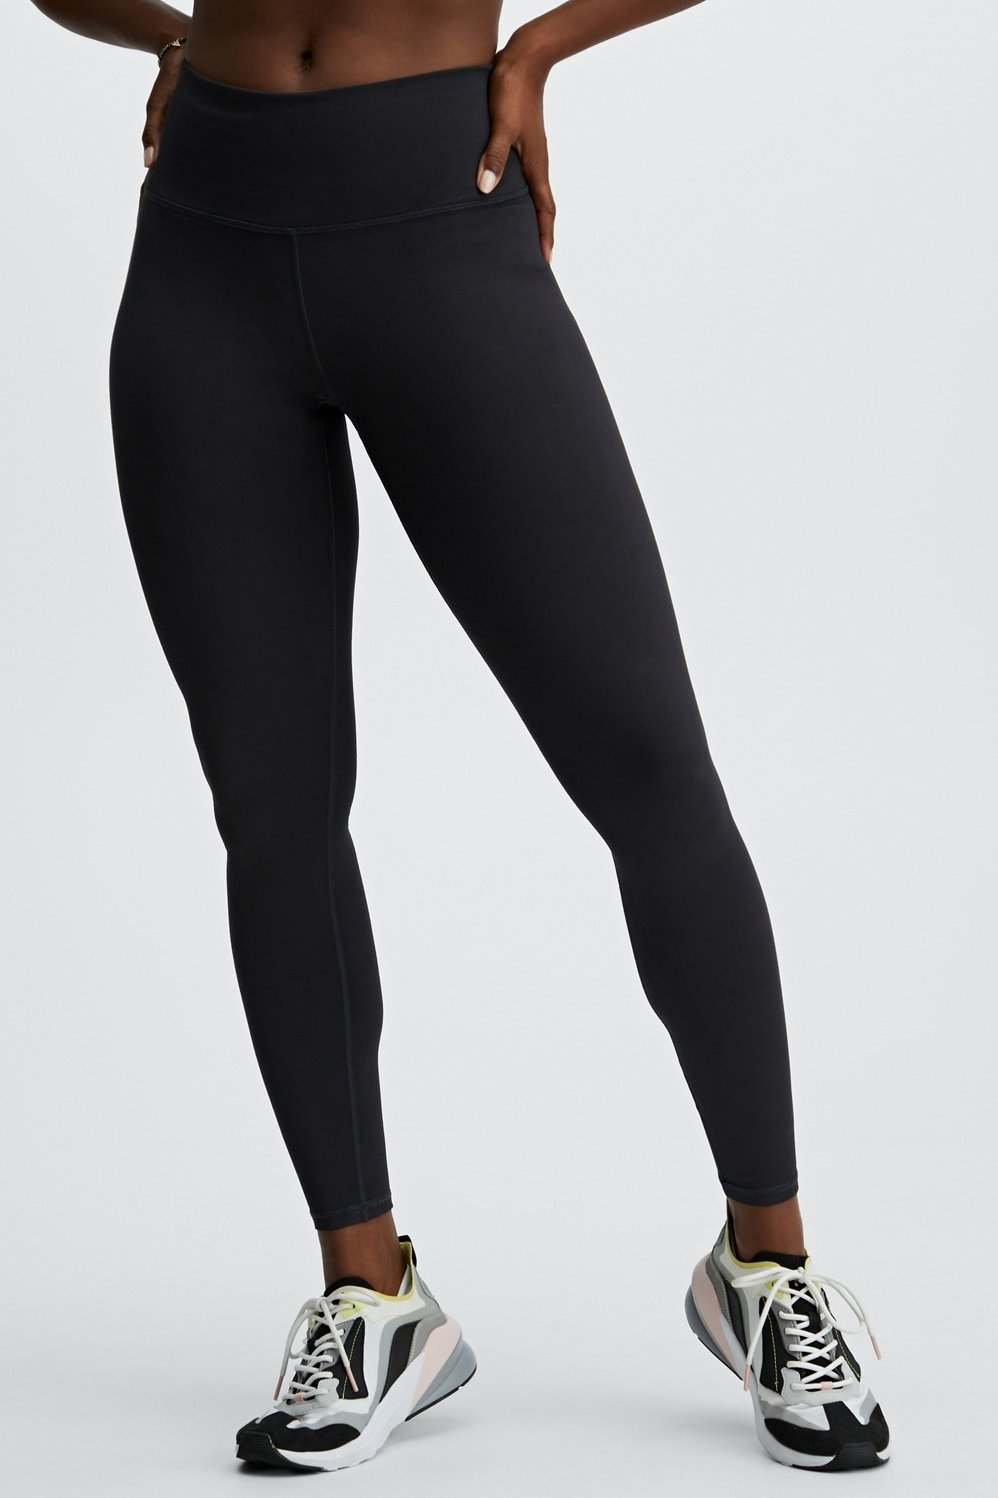 830b90c49a8e1a High-Waisted Solid PowerHold® Legging - Fabletics